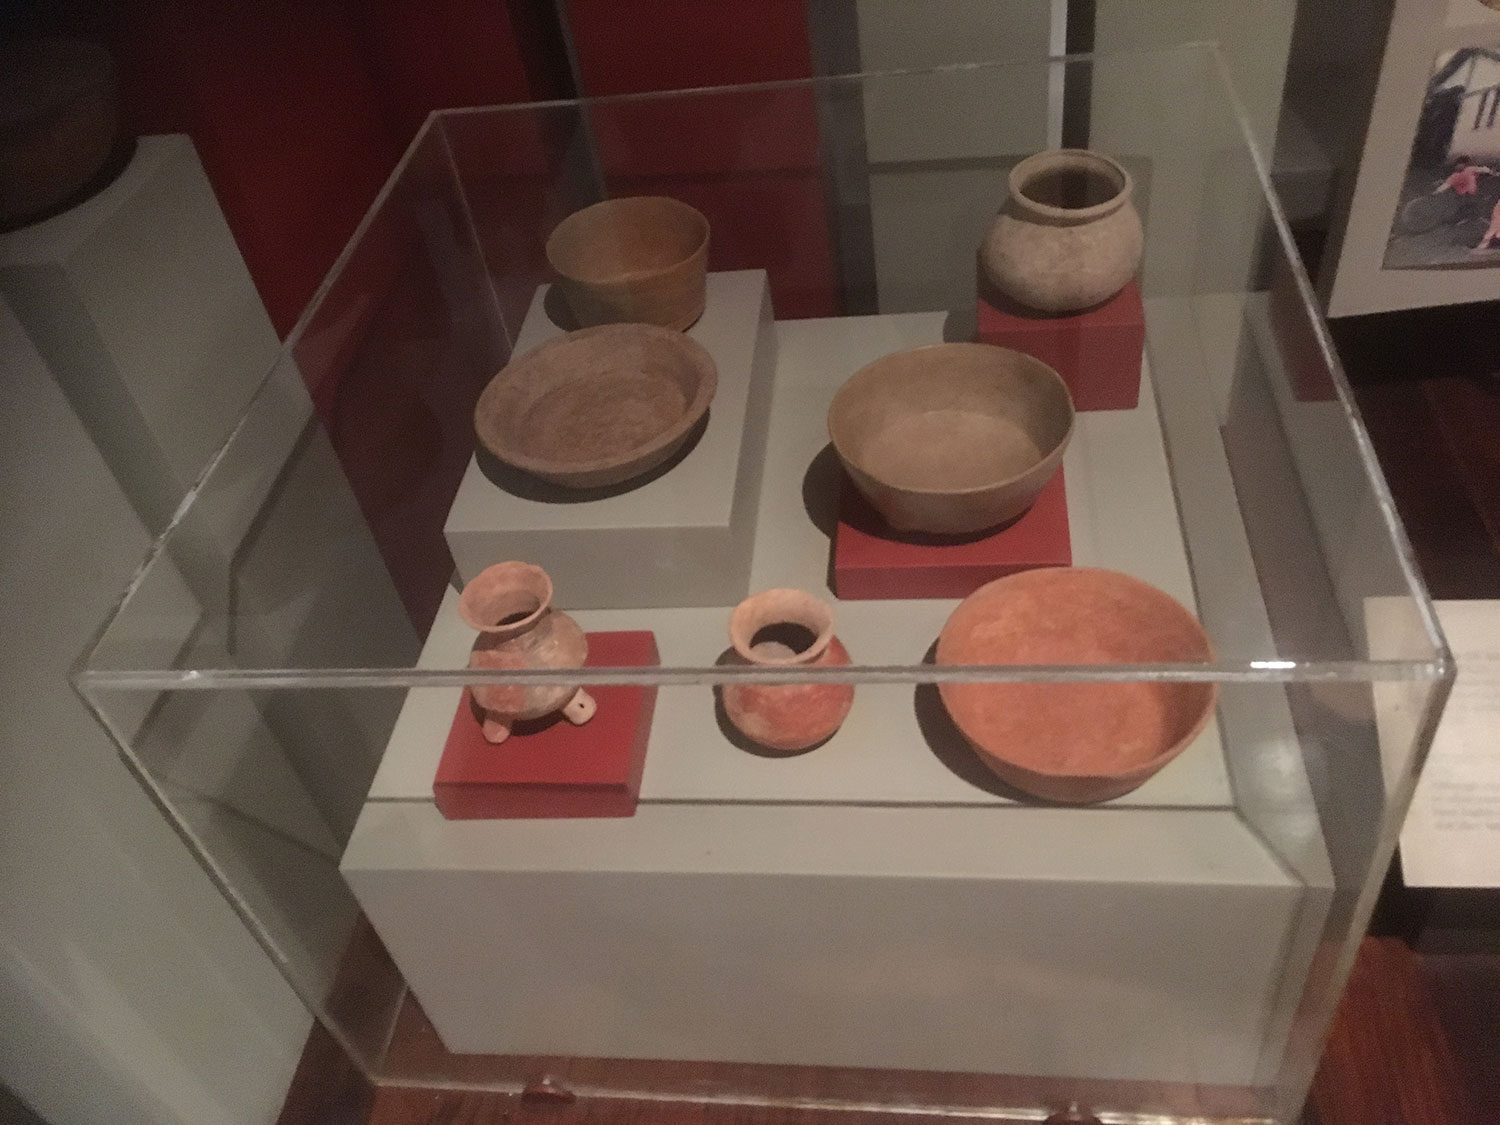 Ancient ceramics from the island. Simple and elegant.